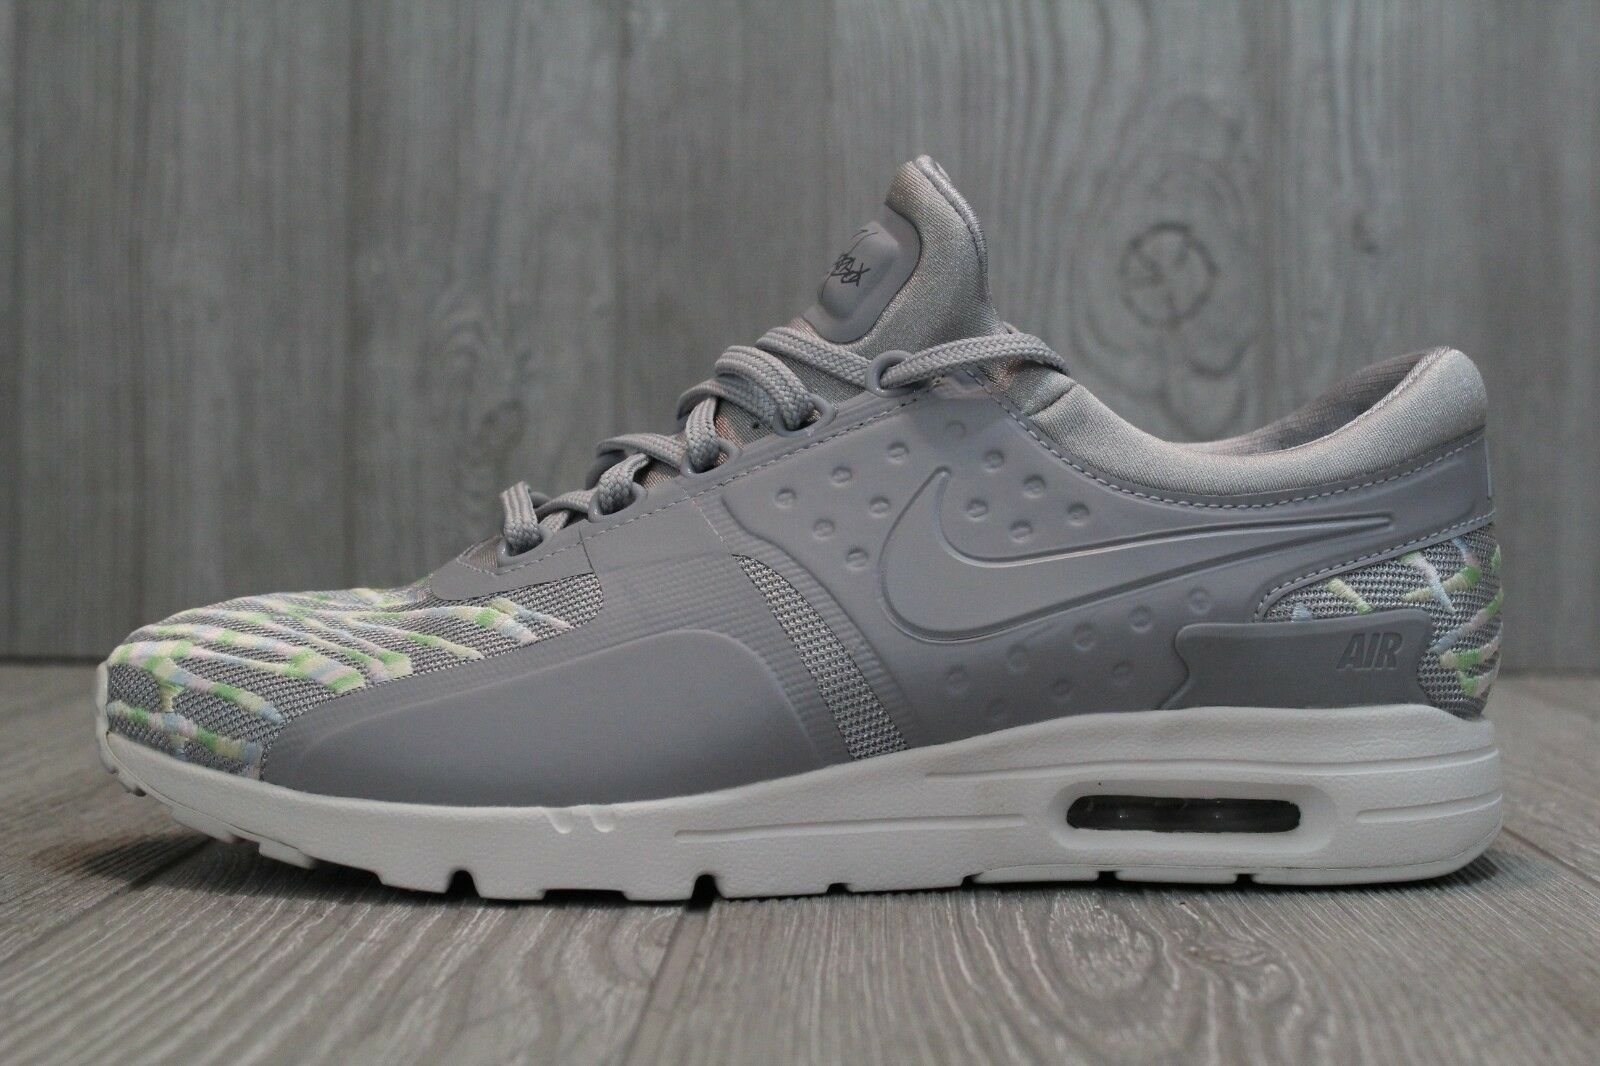 RARE Nike Air Max Zero Sample SE Grey Rainbow Shoes 896199 001 Comfortable The most popular shoes for men and women